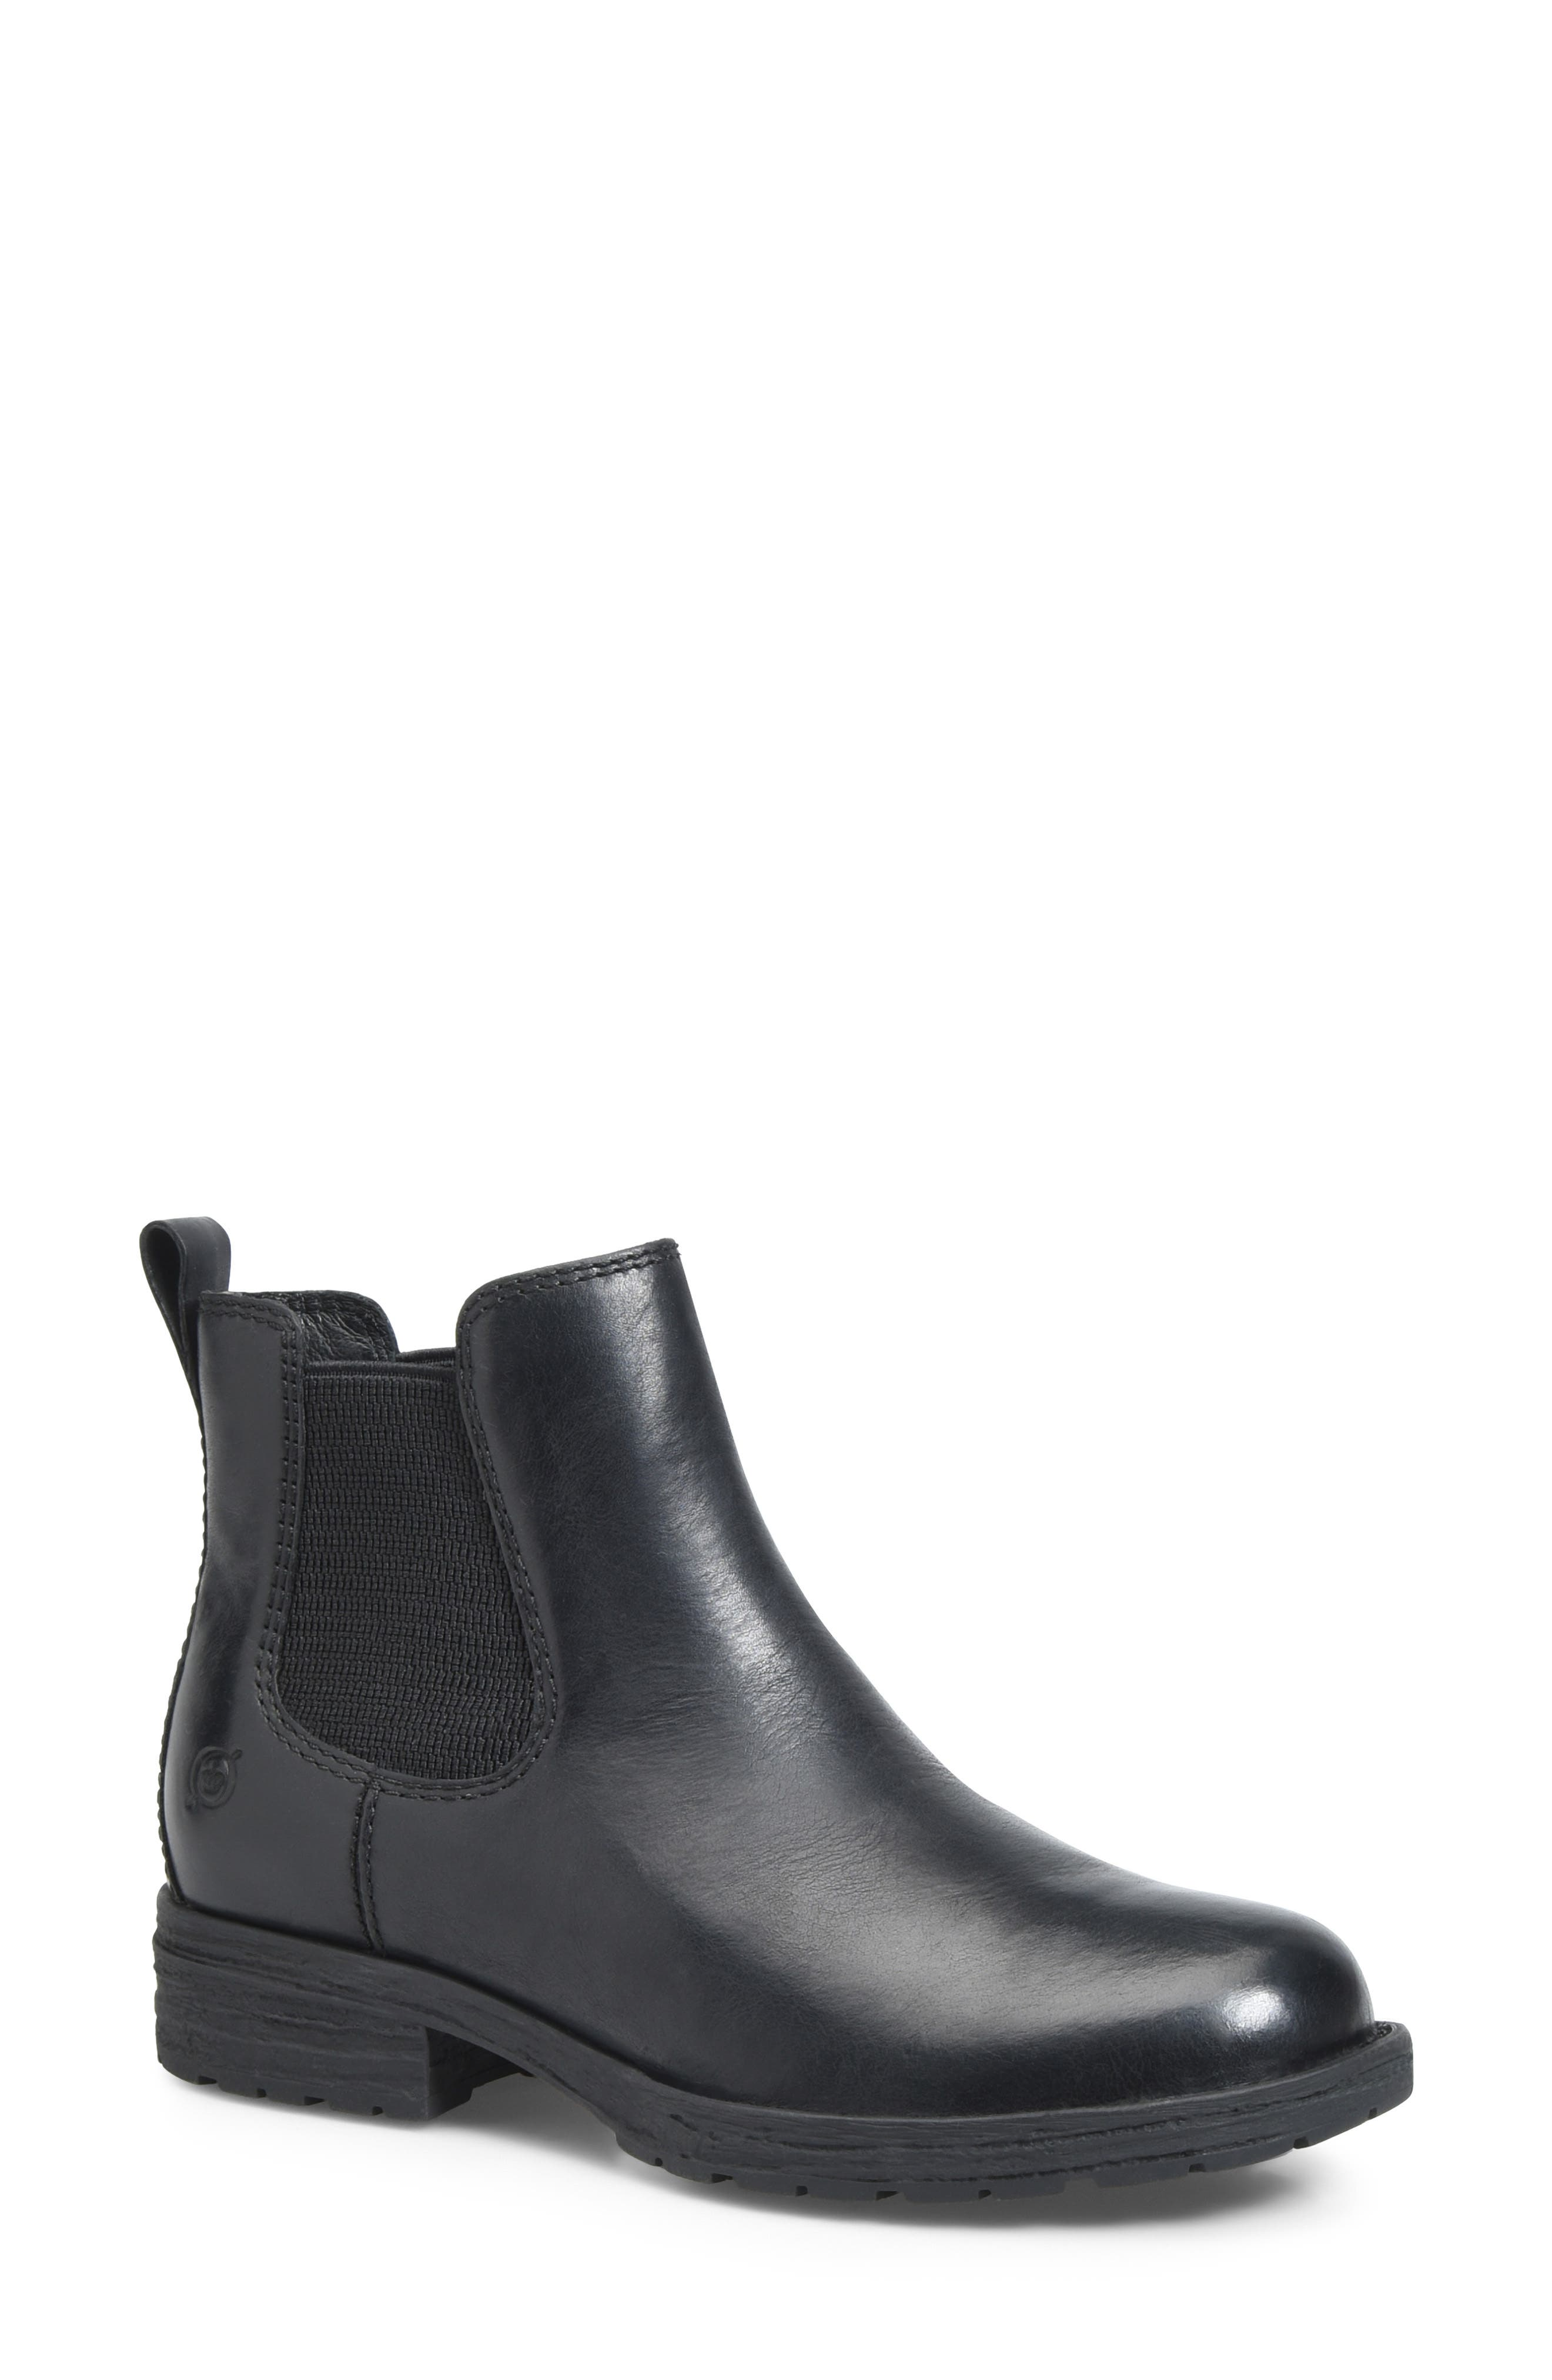 BØRN, Cove Waterproof Chelsea Boot, Main thumbnail 1, color, BLACK DISTRESSED LEATHER